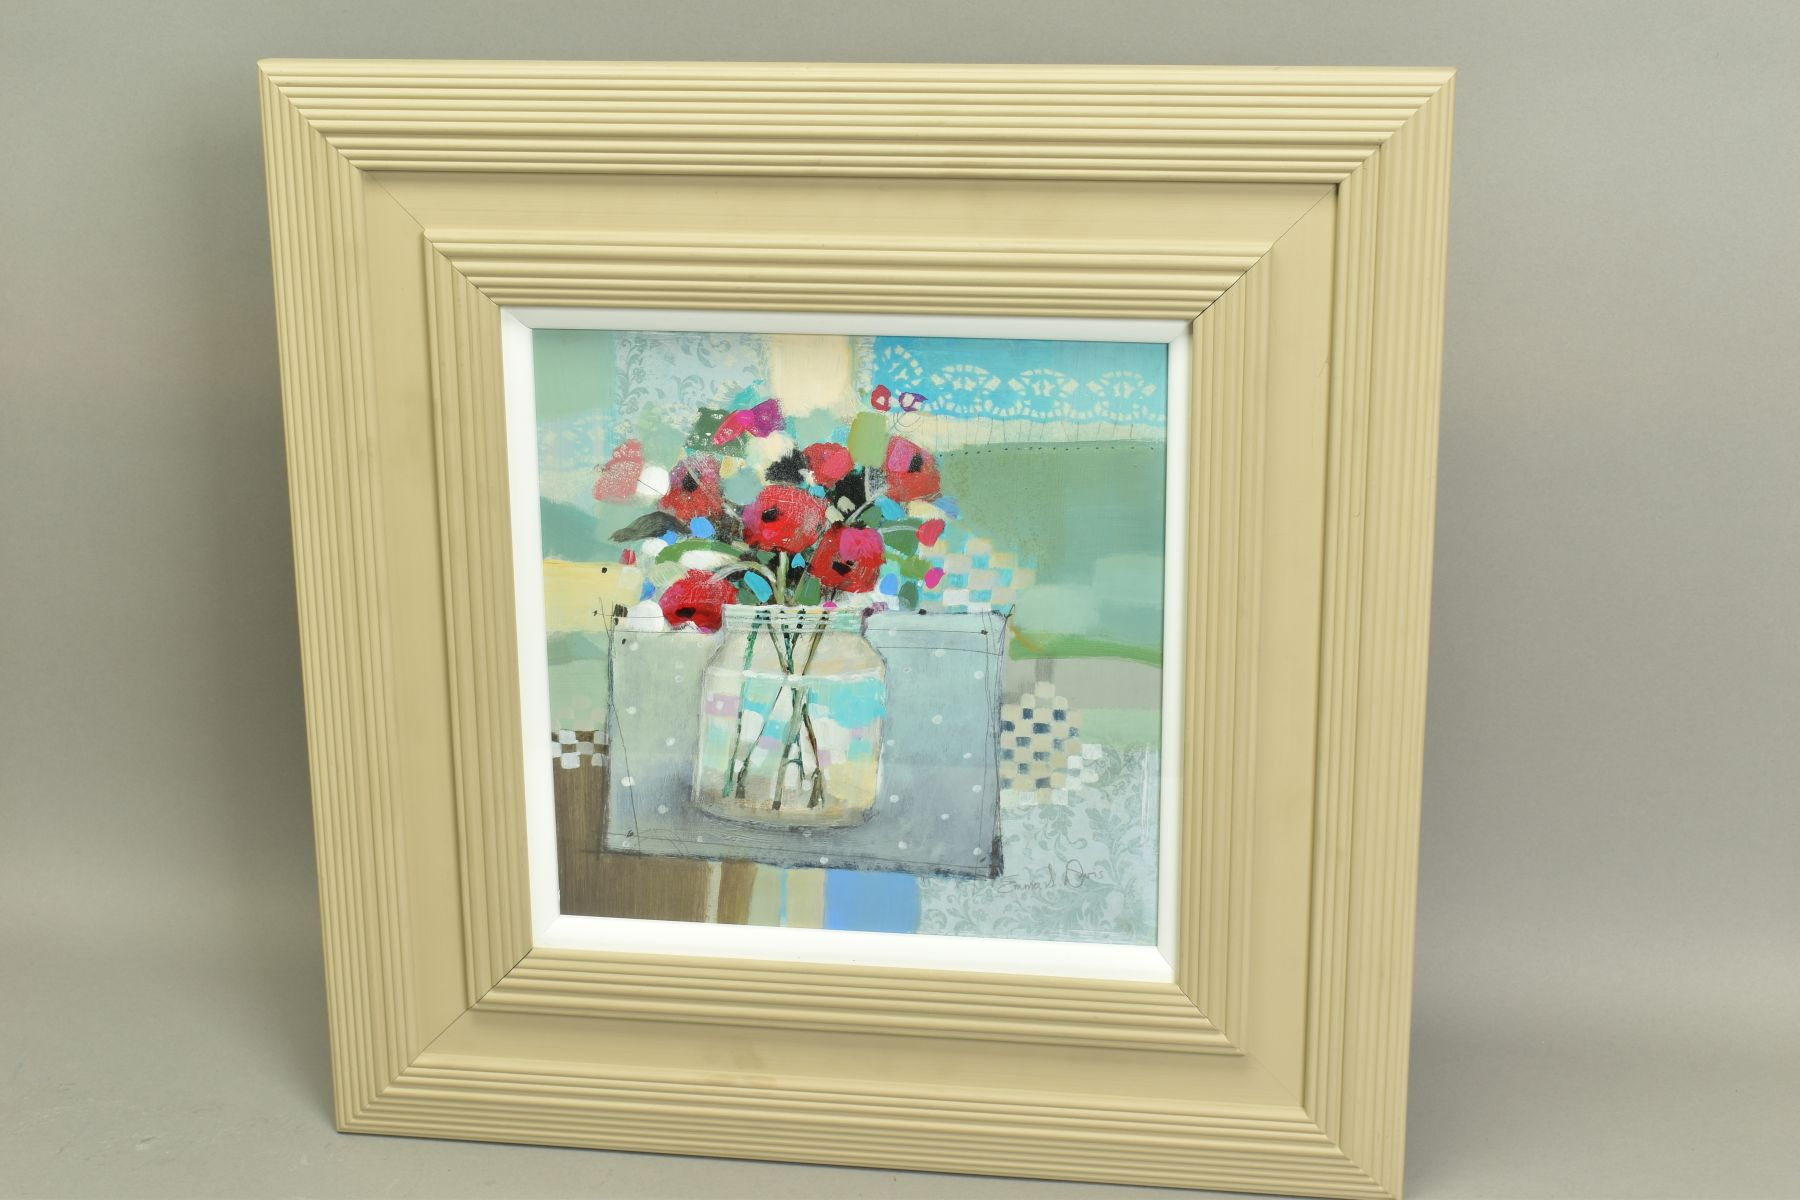 EMMA S. DAVIS (SCOTTISH 1975), 'Poppies in a Jar', a still life study of wild flowers, signed bottom - Image 4 of 5